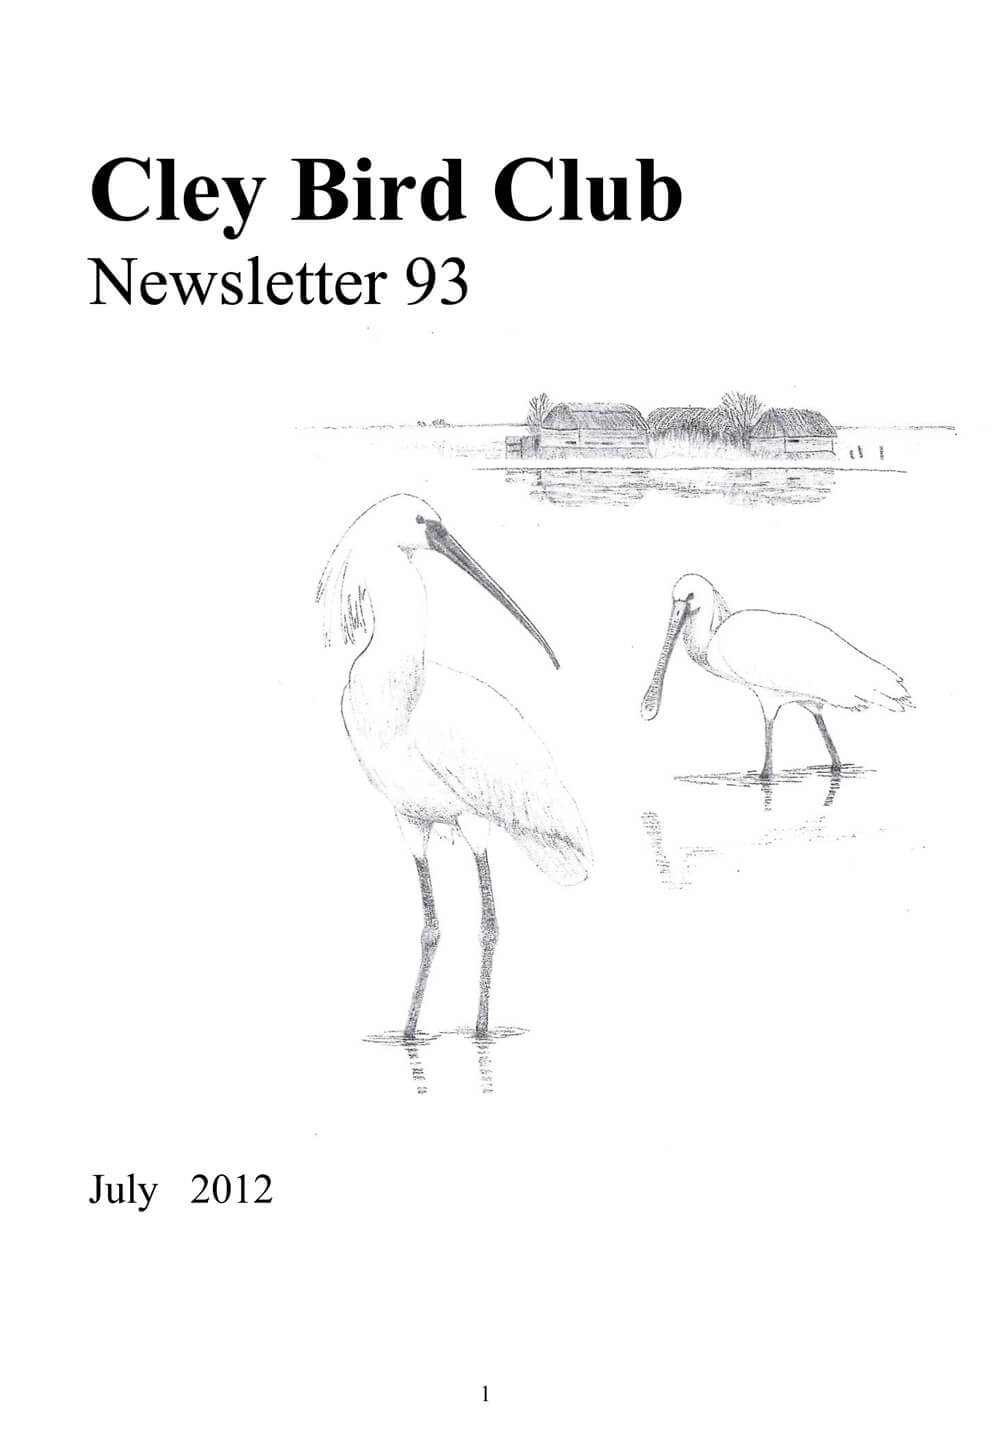 cbc newsletter 93 front cover